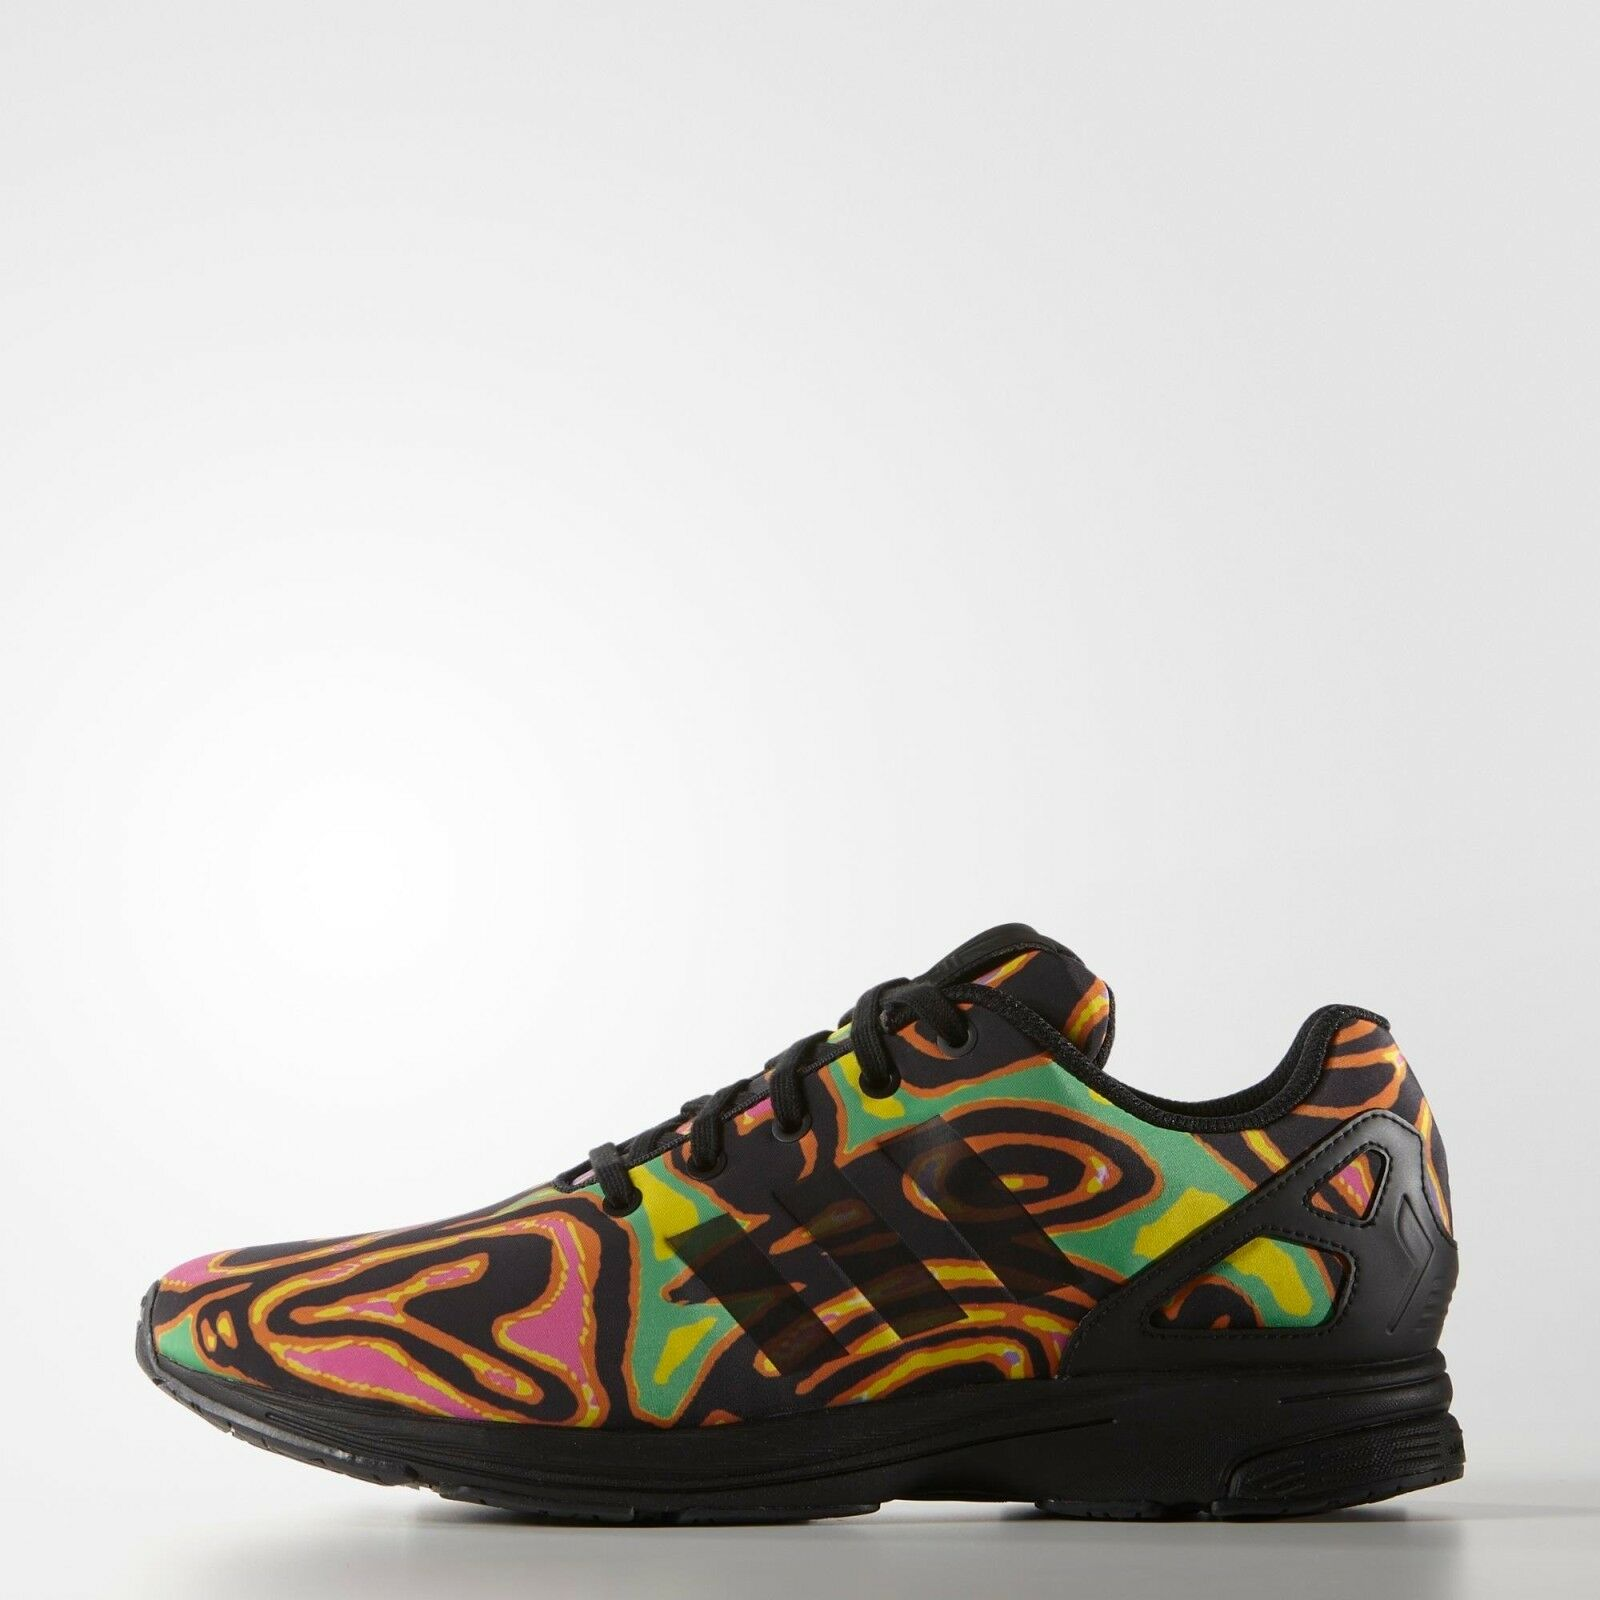 Adidas Originals Jeremy Scott Black ZX Flux Tech Psychedelic Shoes S77841 New